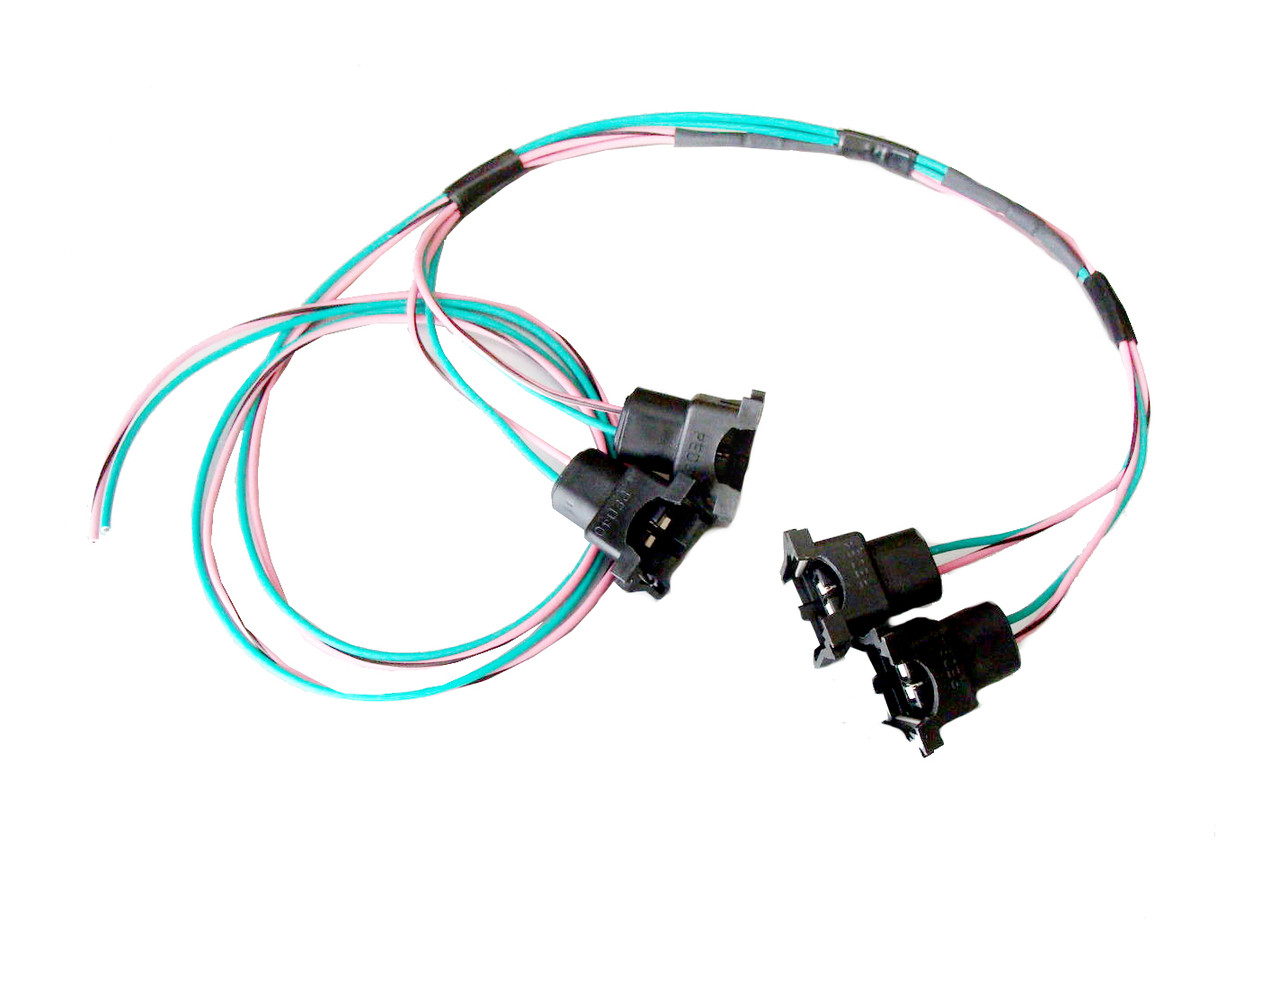 hight resolution of 85 95 tpi lt1 fuel injector connector wiring harness assembly lh ford fuel injection wiring harness fuel injection wiring harness